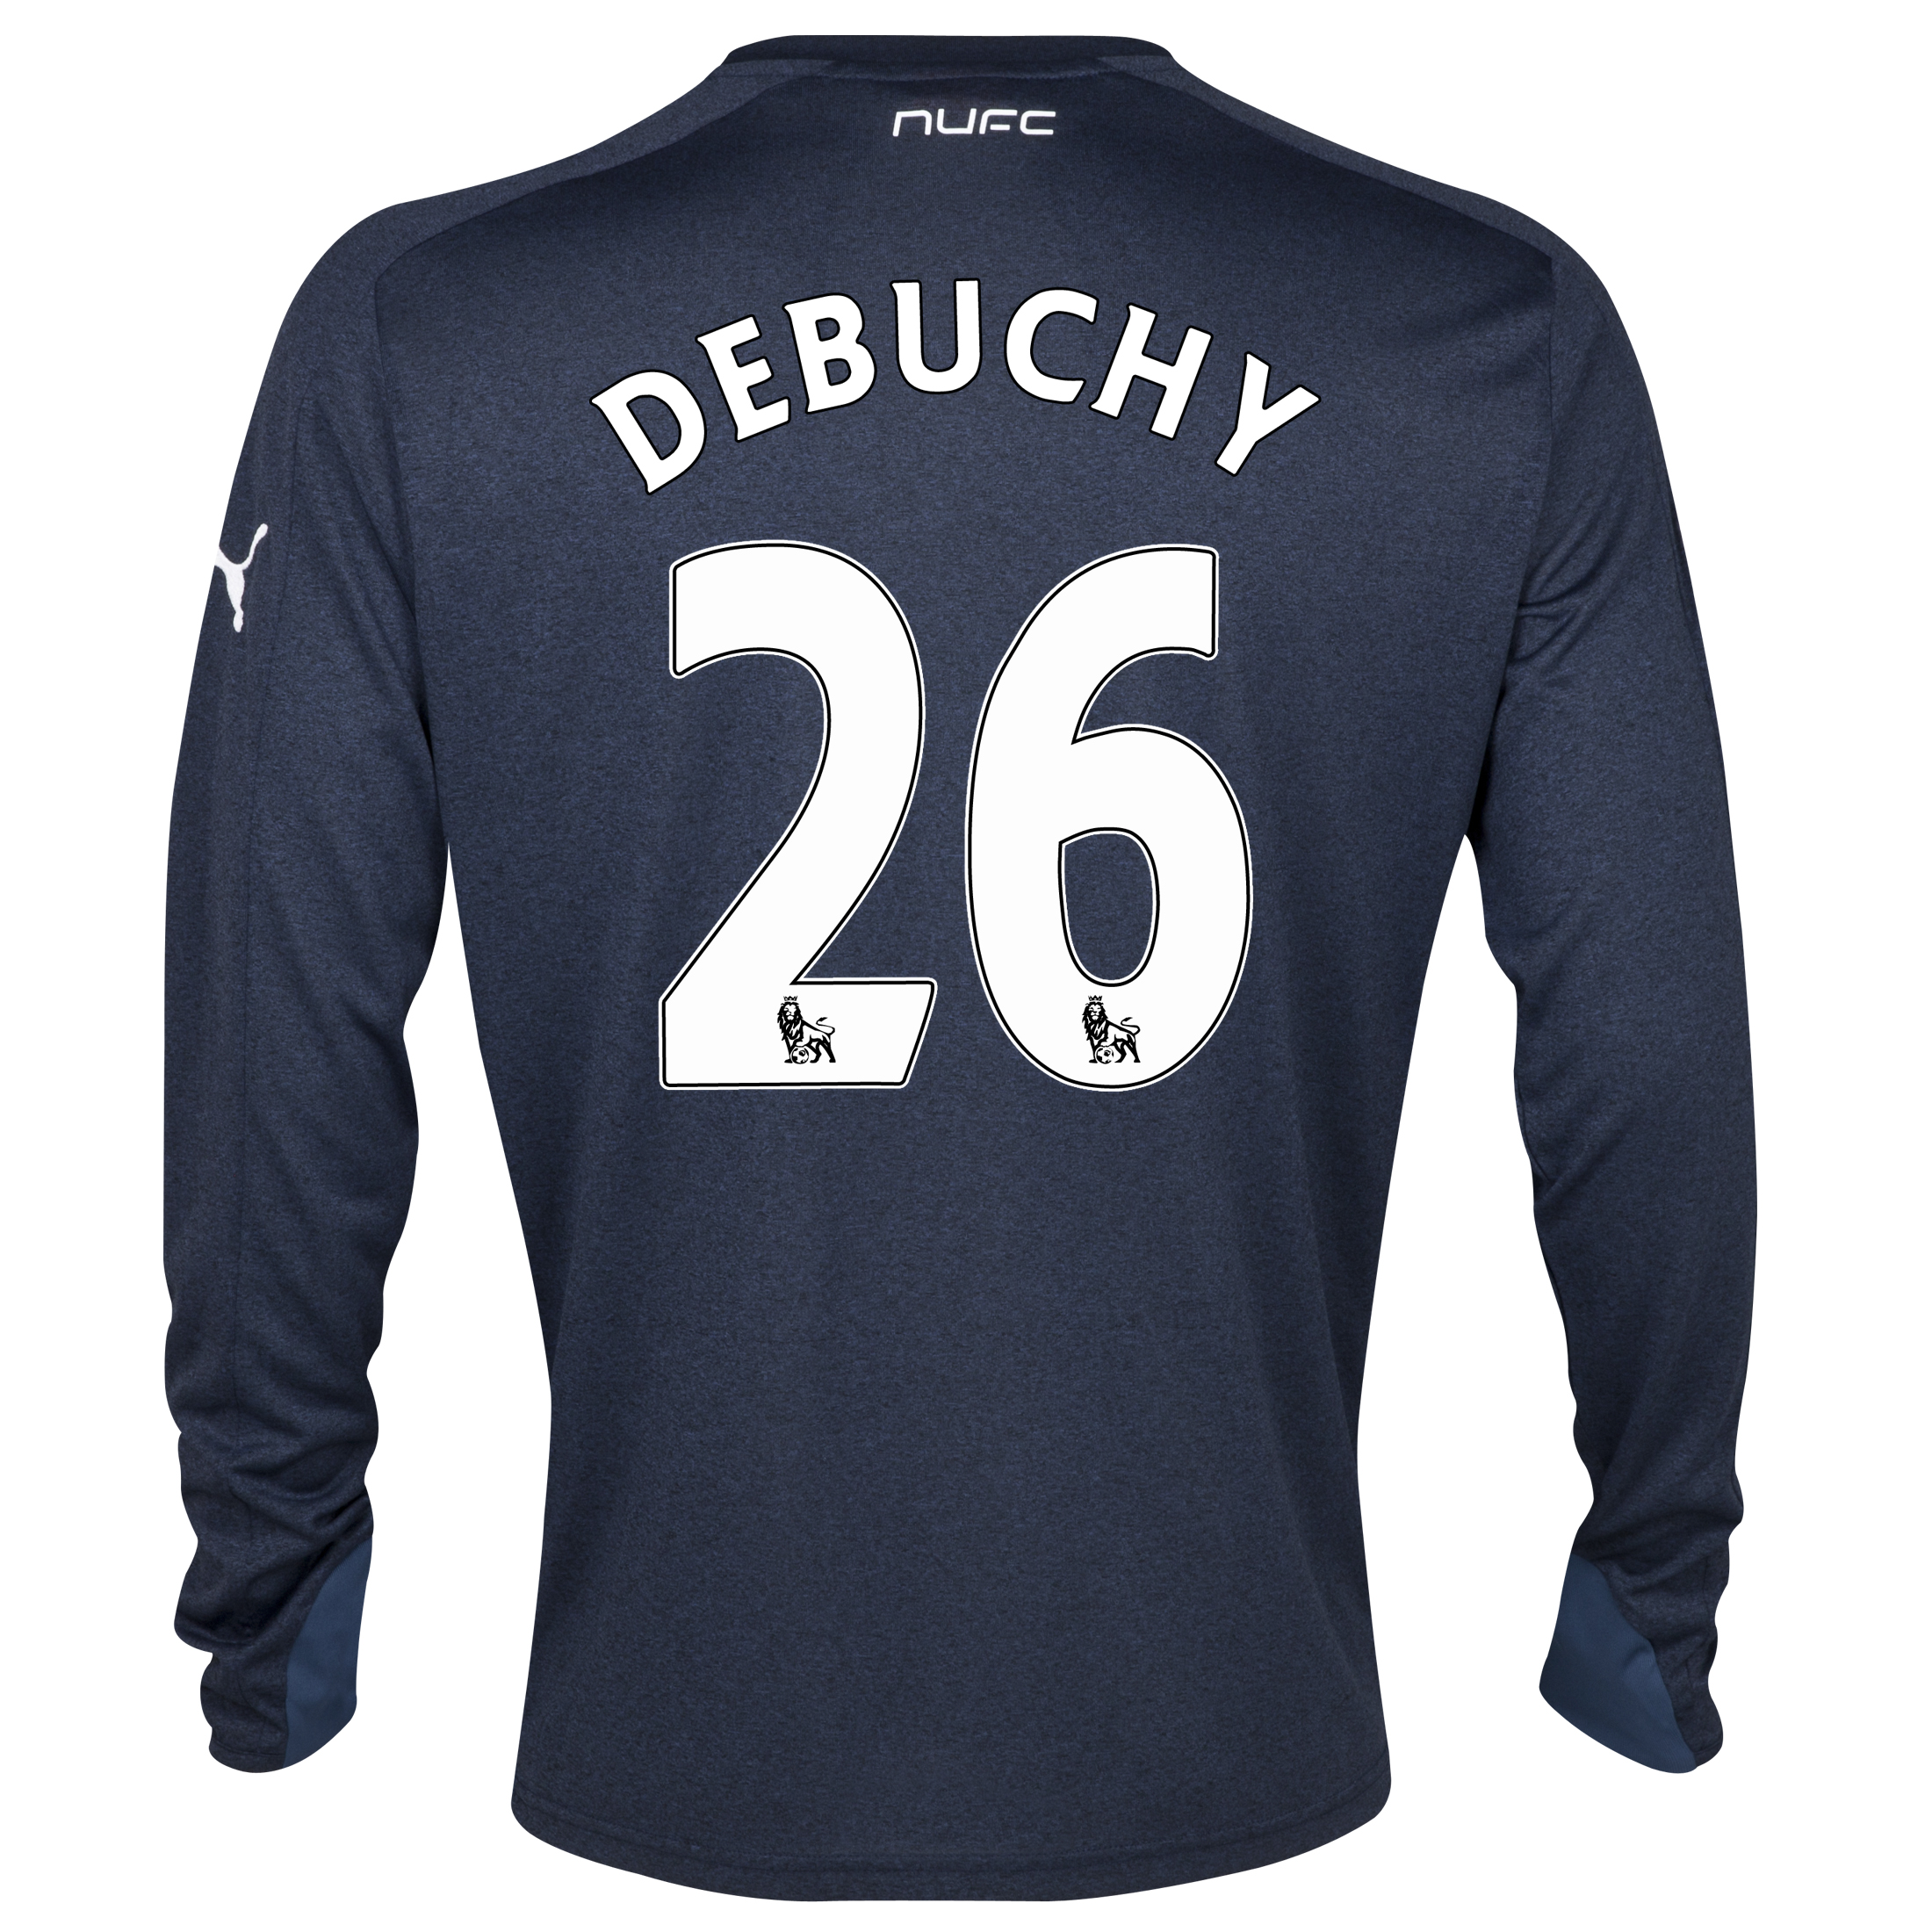 Newcastle United Away Shirt 2013/14 -Womens with Debuchy 26 printing